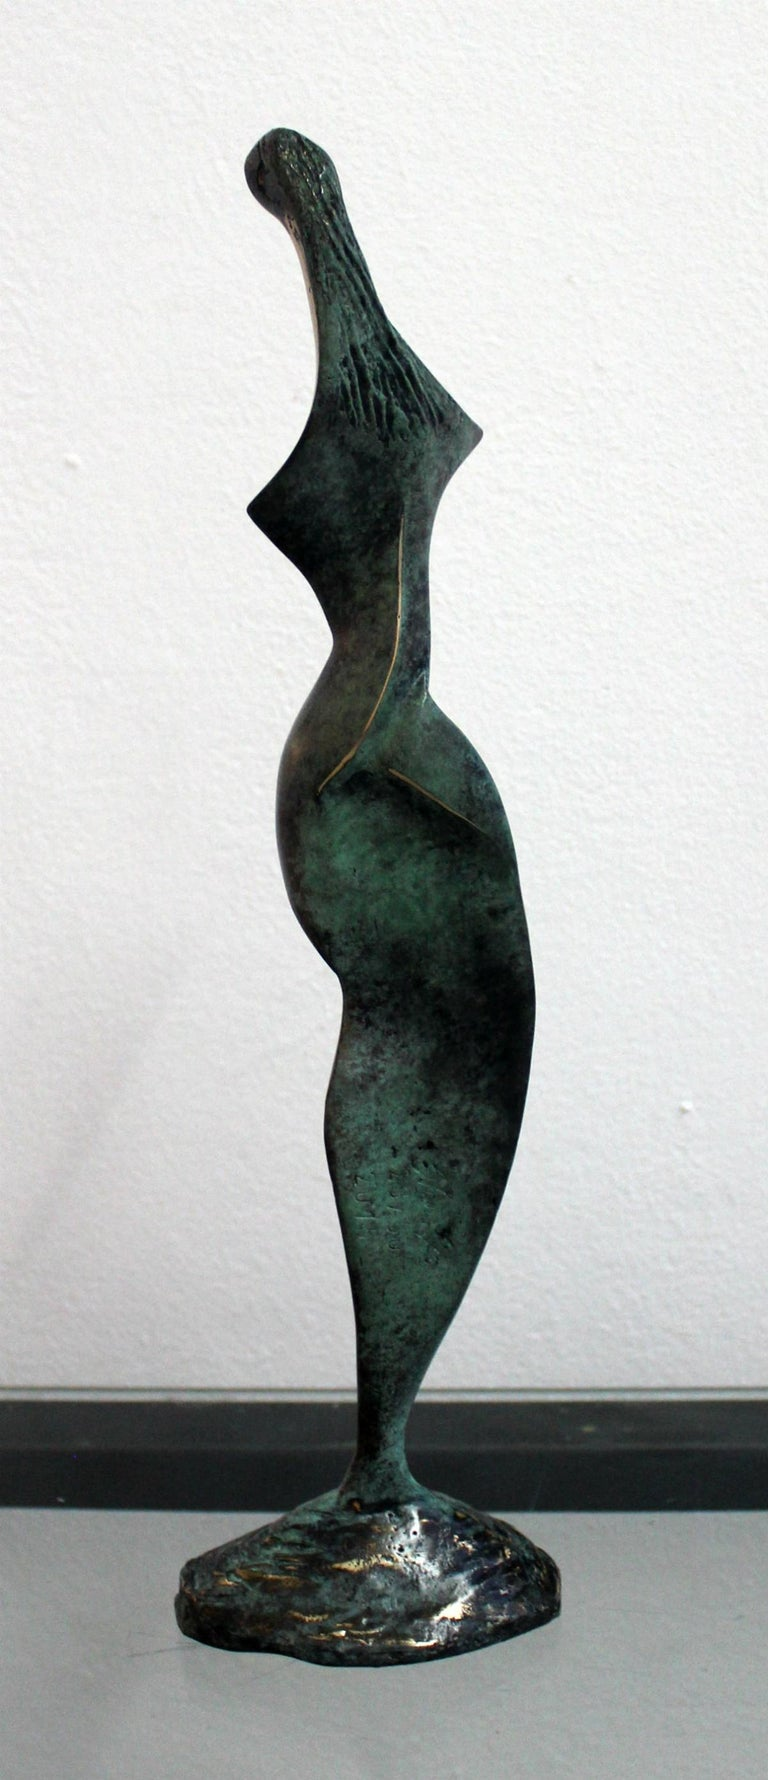 Dame - XXI Century, Contemporary Bronze Sculpture, Abstract, Figurative, Nude - Gold Figurative Sculpture by Stanisław Wysocki